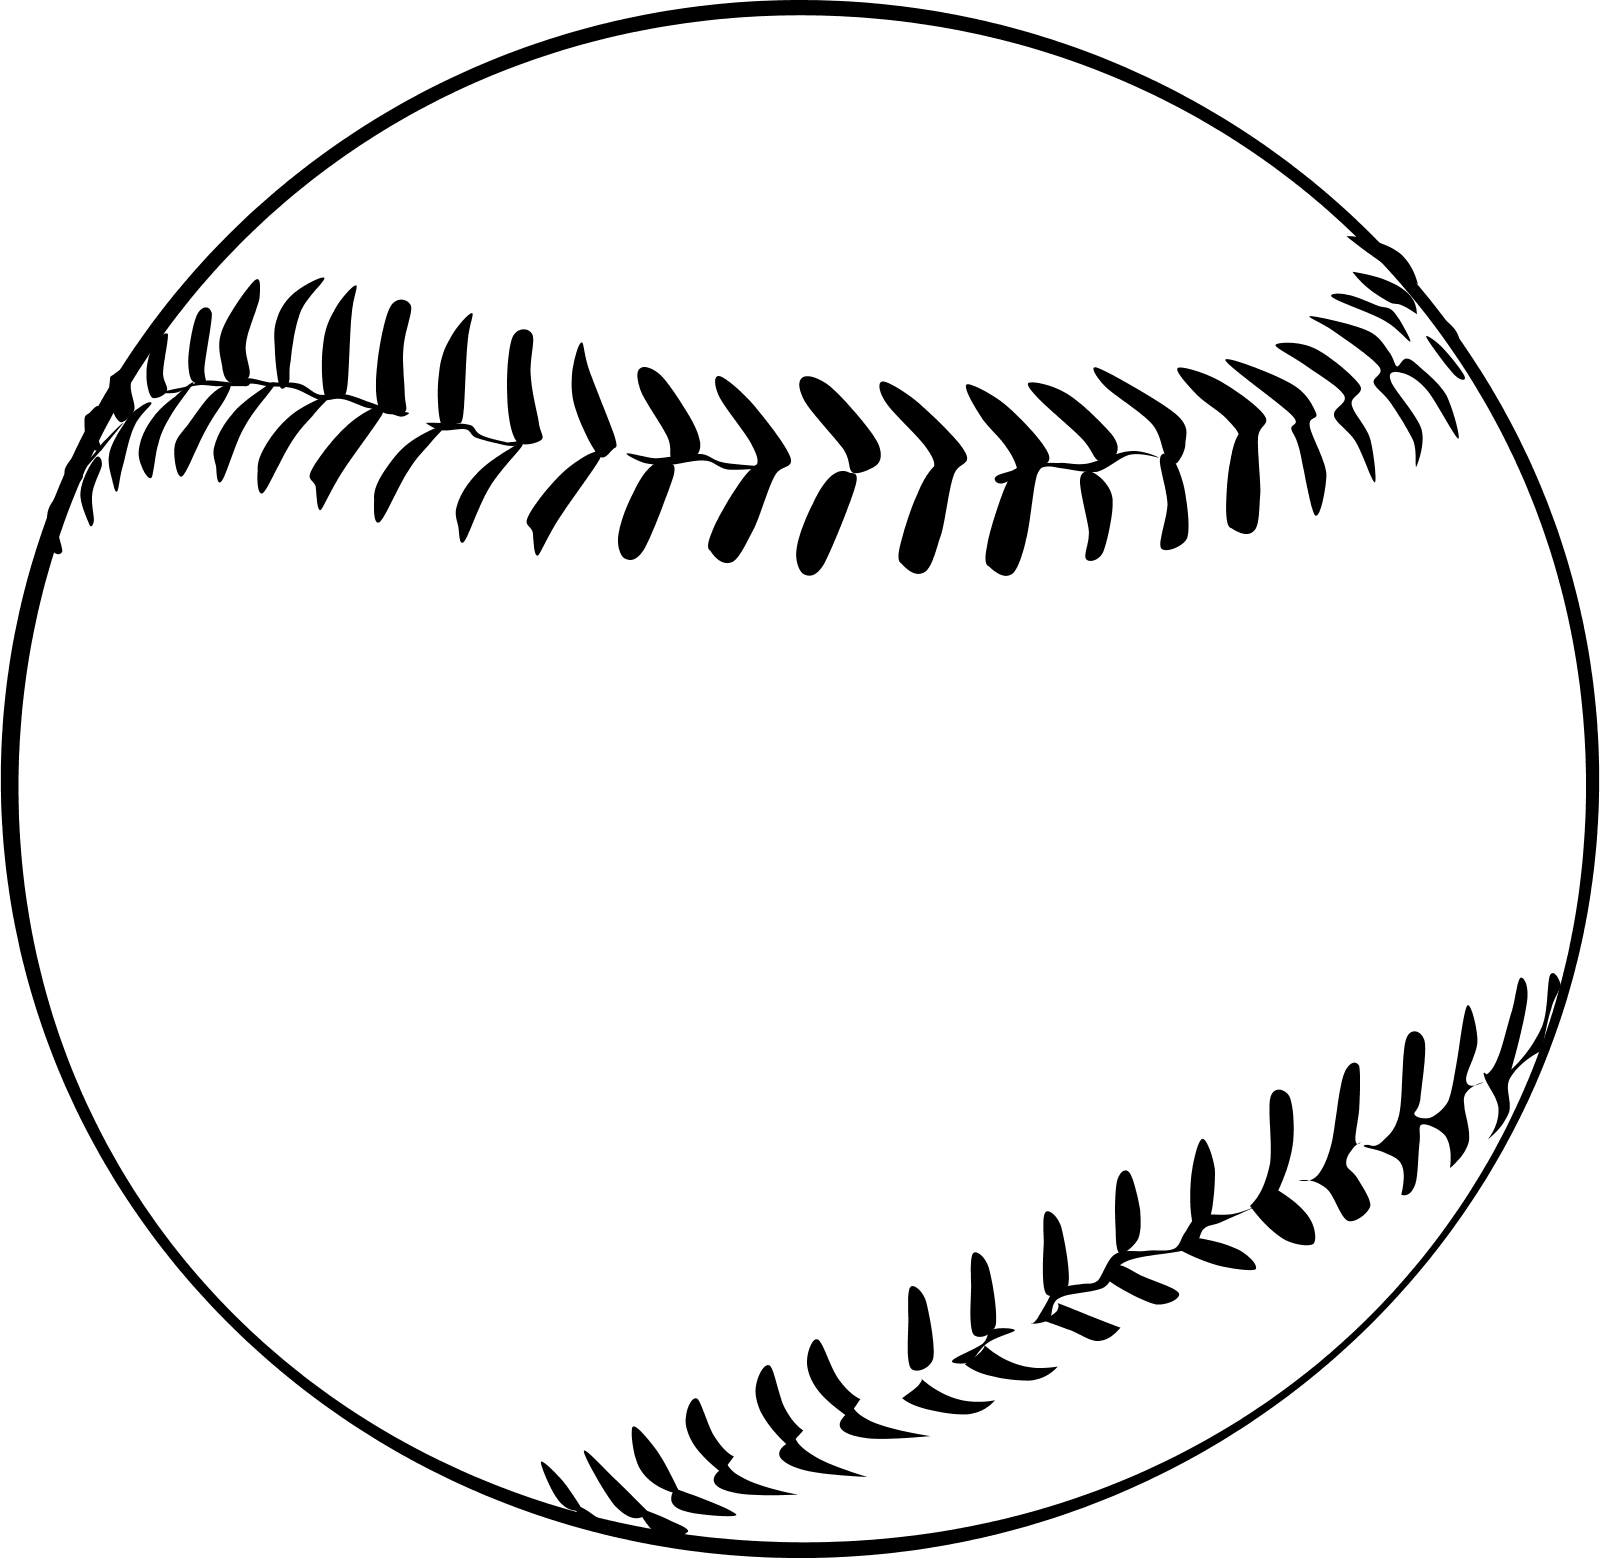 Free Softball Vector Images